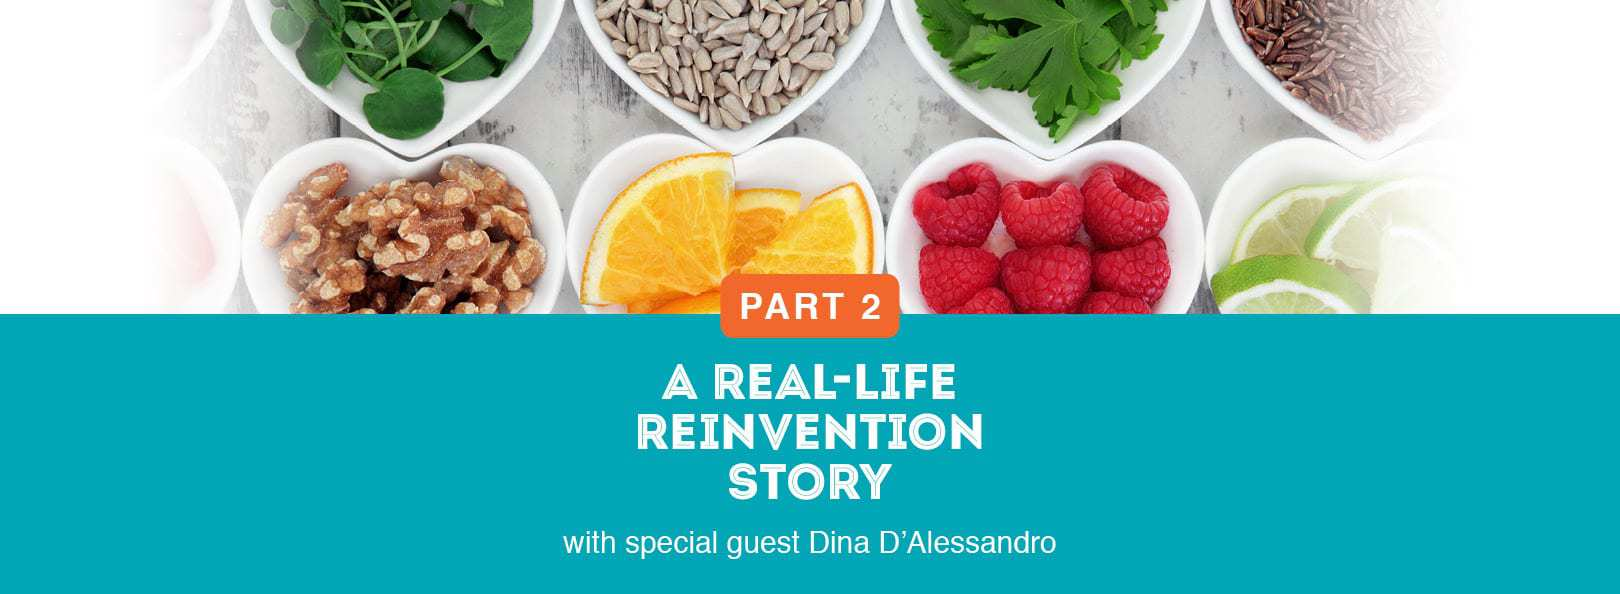 A Real-Life Reinvention Story with special guest Dina D'Alessandro - Part 2